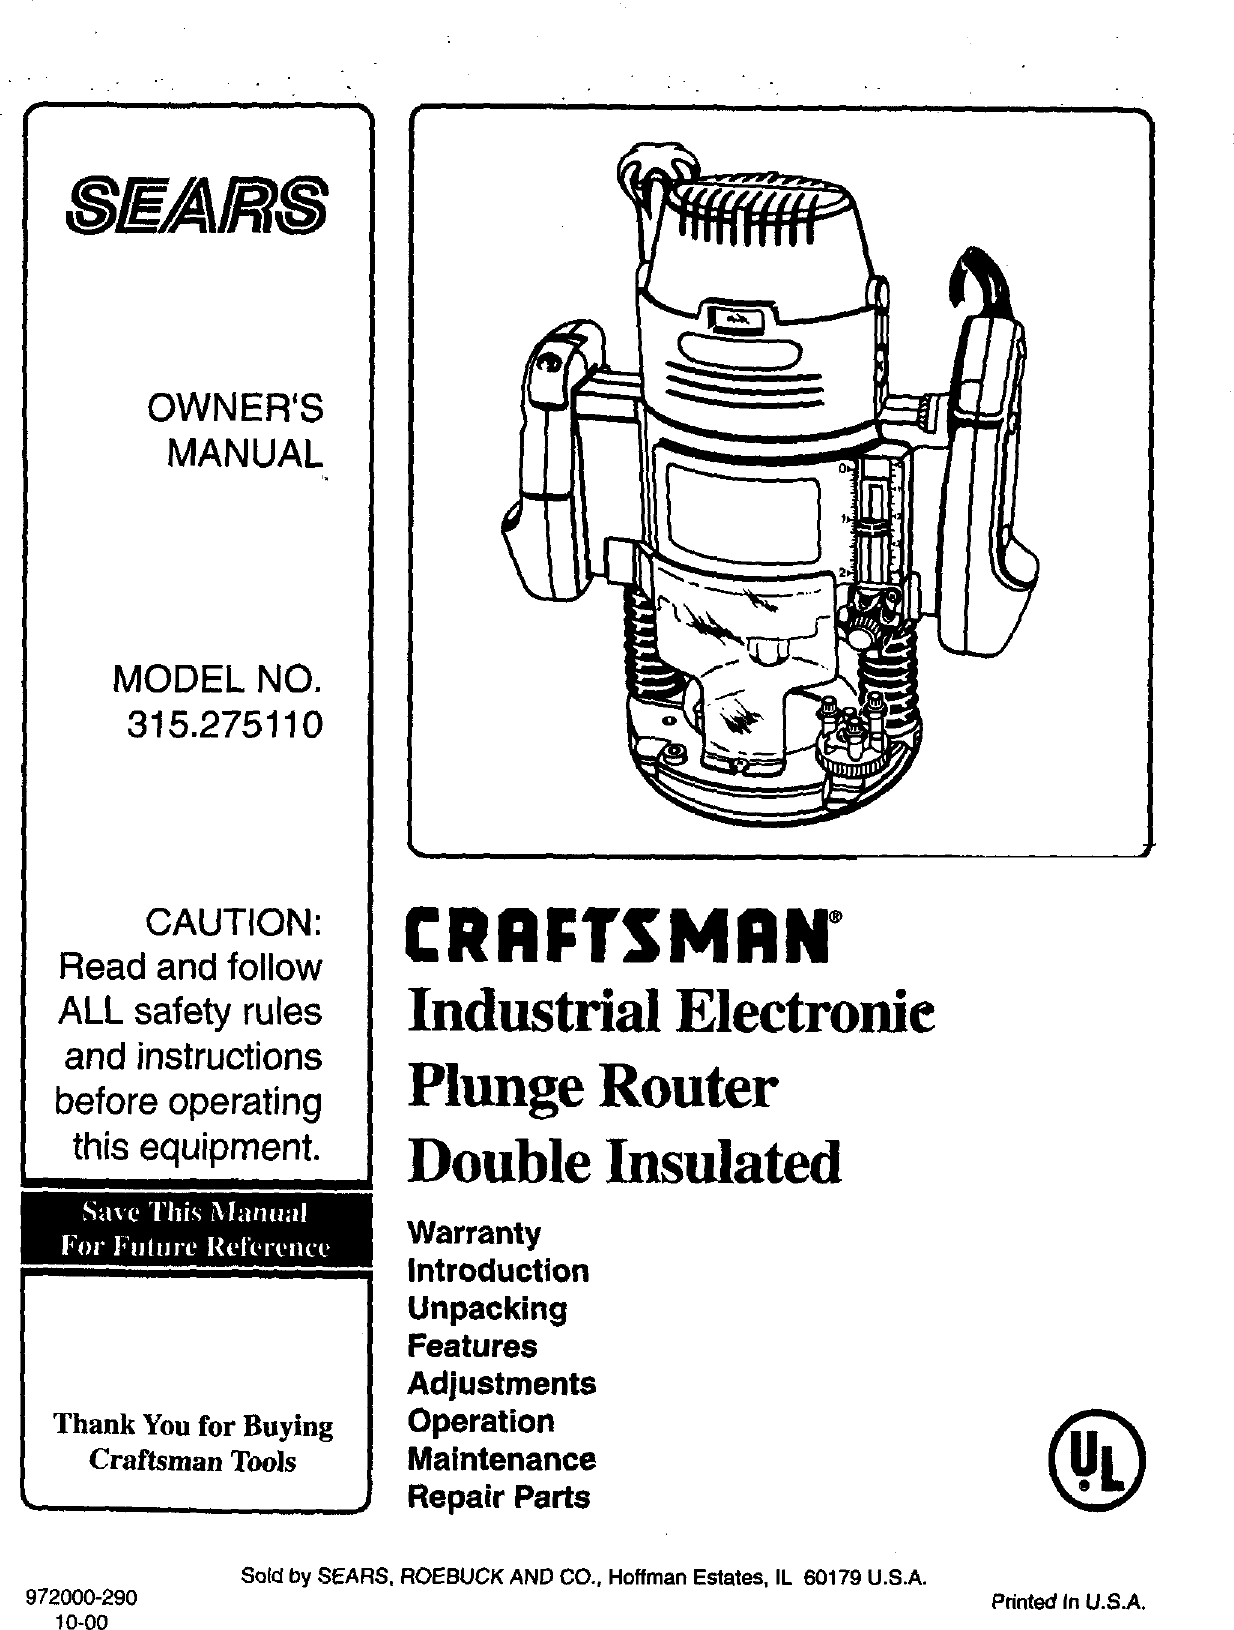 Craftsman 315275110 User Manual ELECTRONIC PLUNGE ROUTER